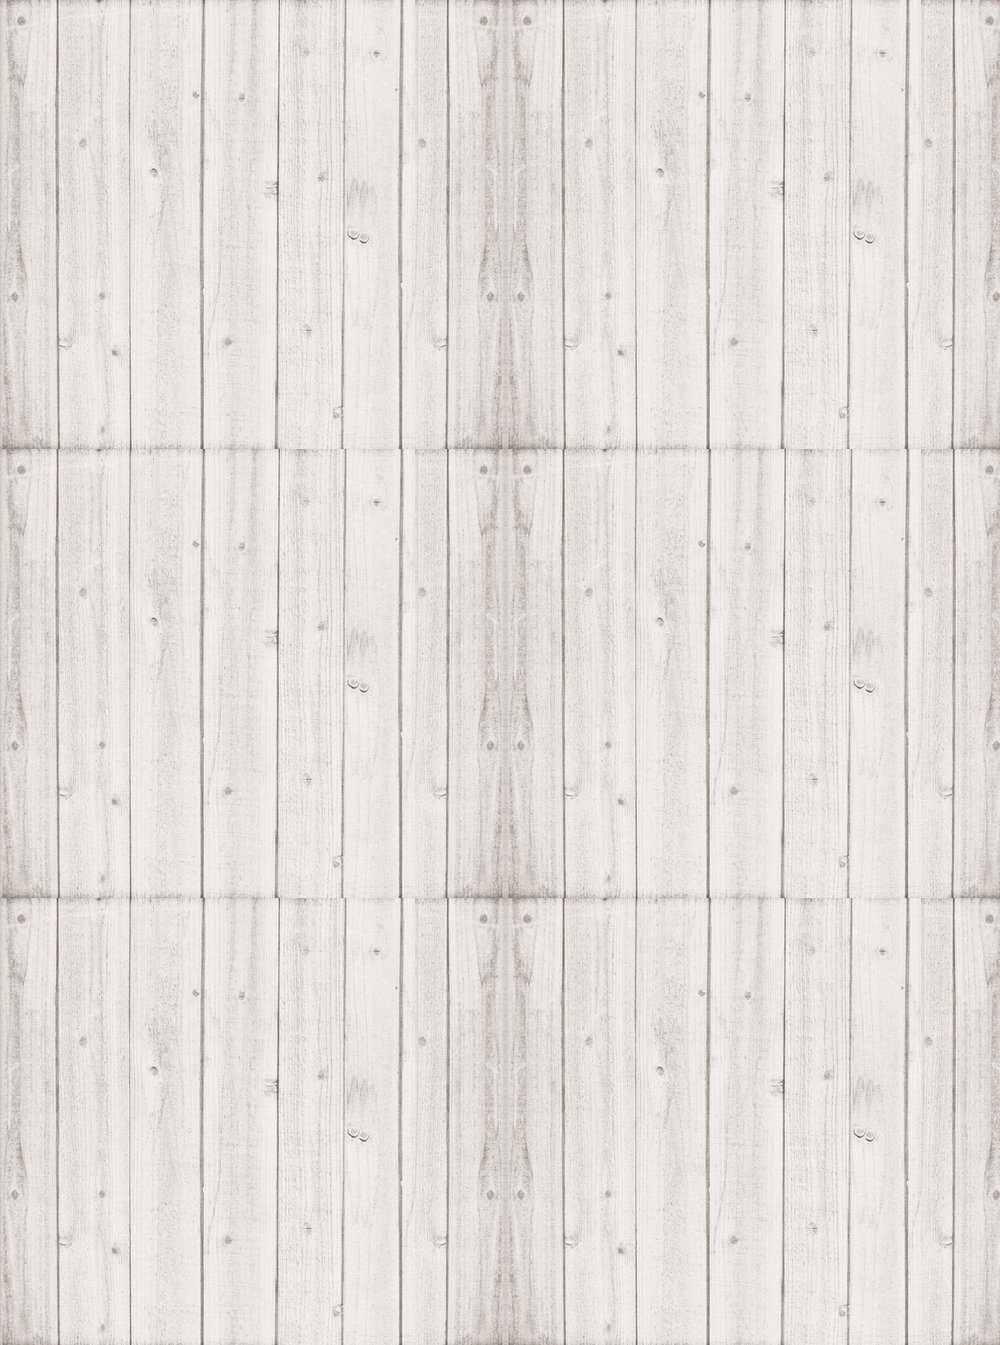 Background #4 (White Wash Wood)